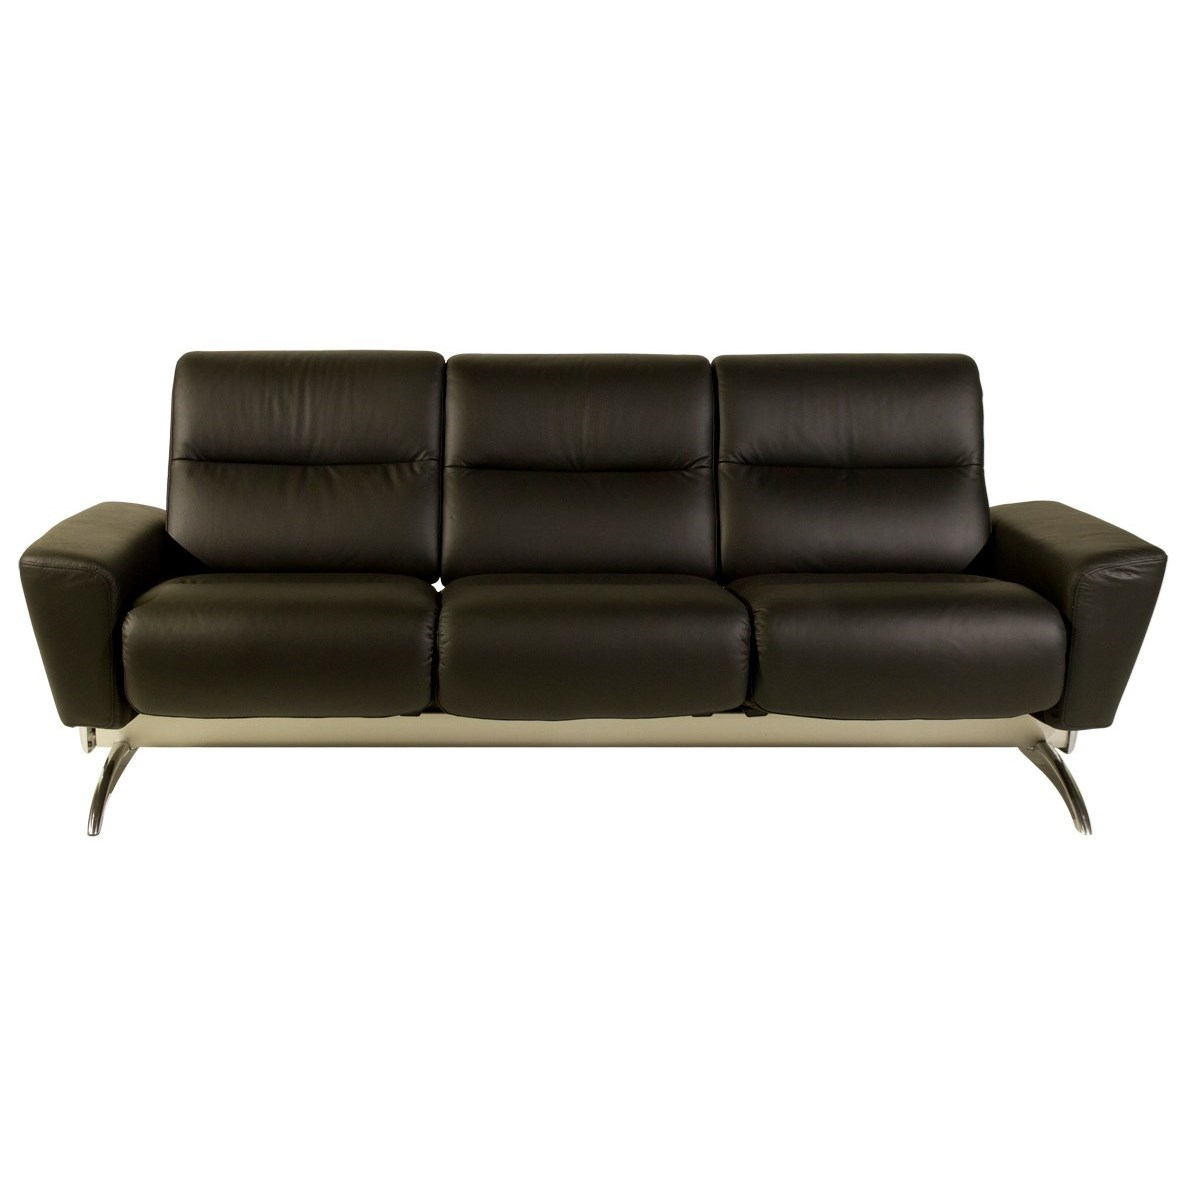 Stressless Sofa Adjustment Stressless Stressless You 1501030 Julia 3 Seater Sofa With